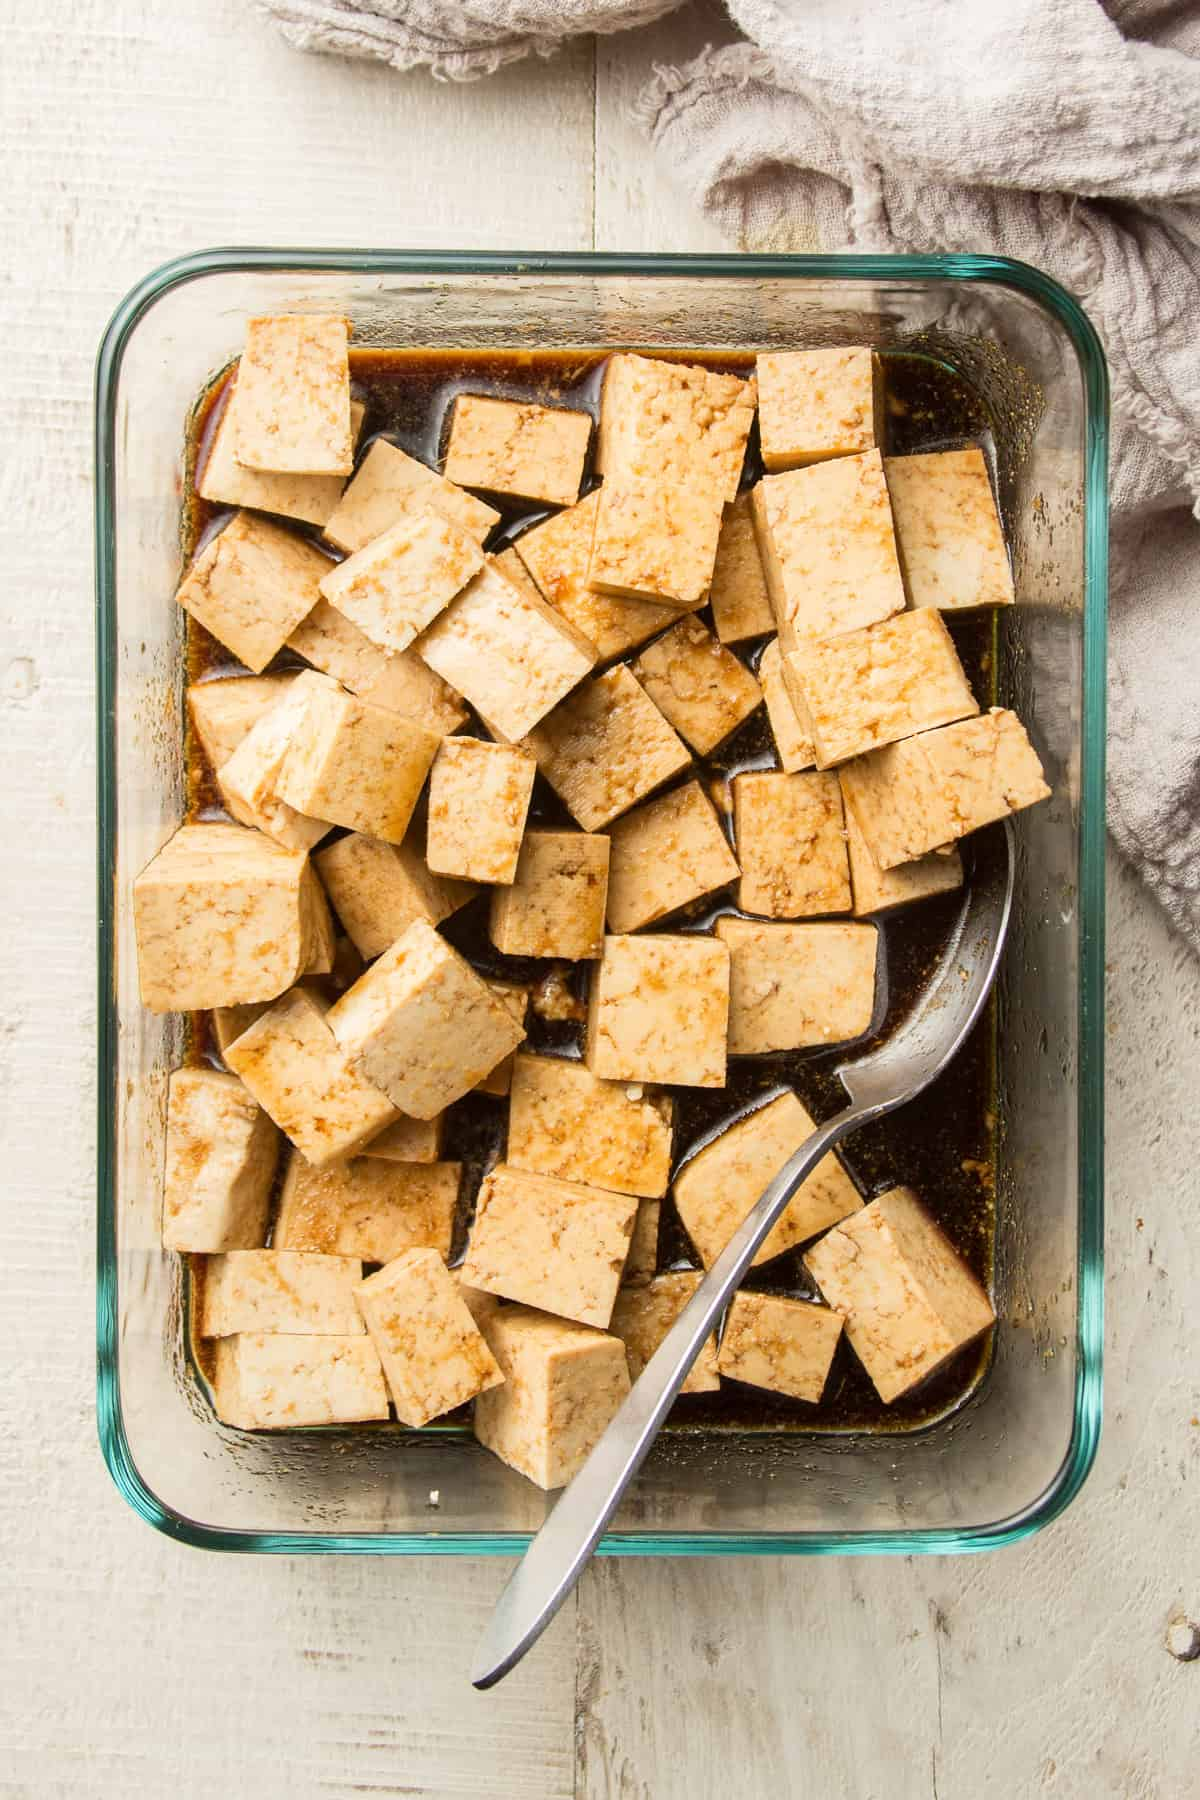 Tofu Marinating in a Glass Dish with Spoon